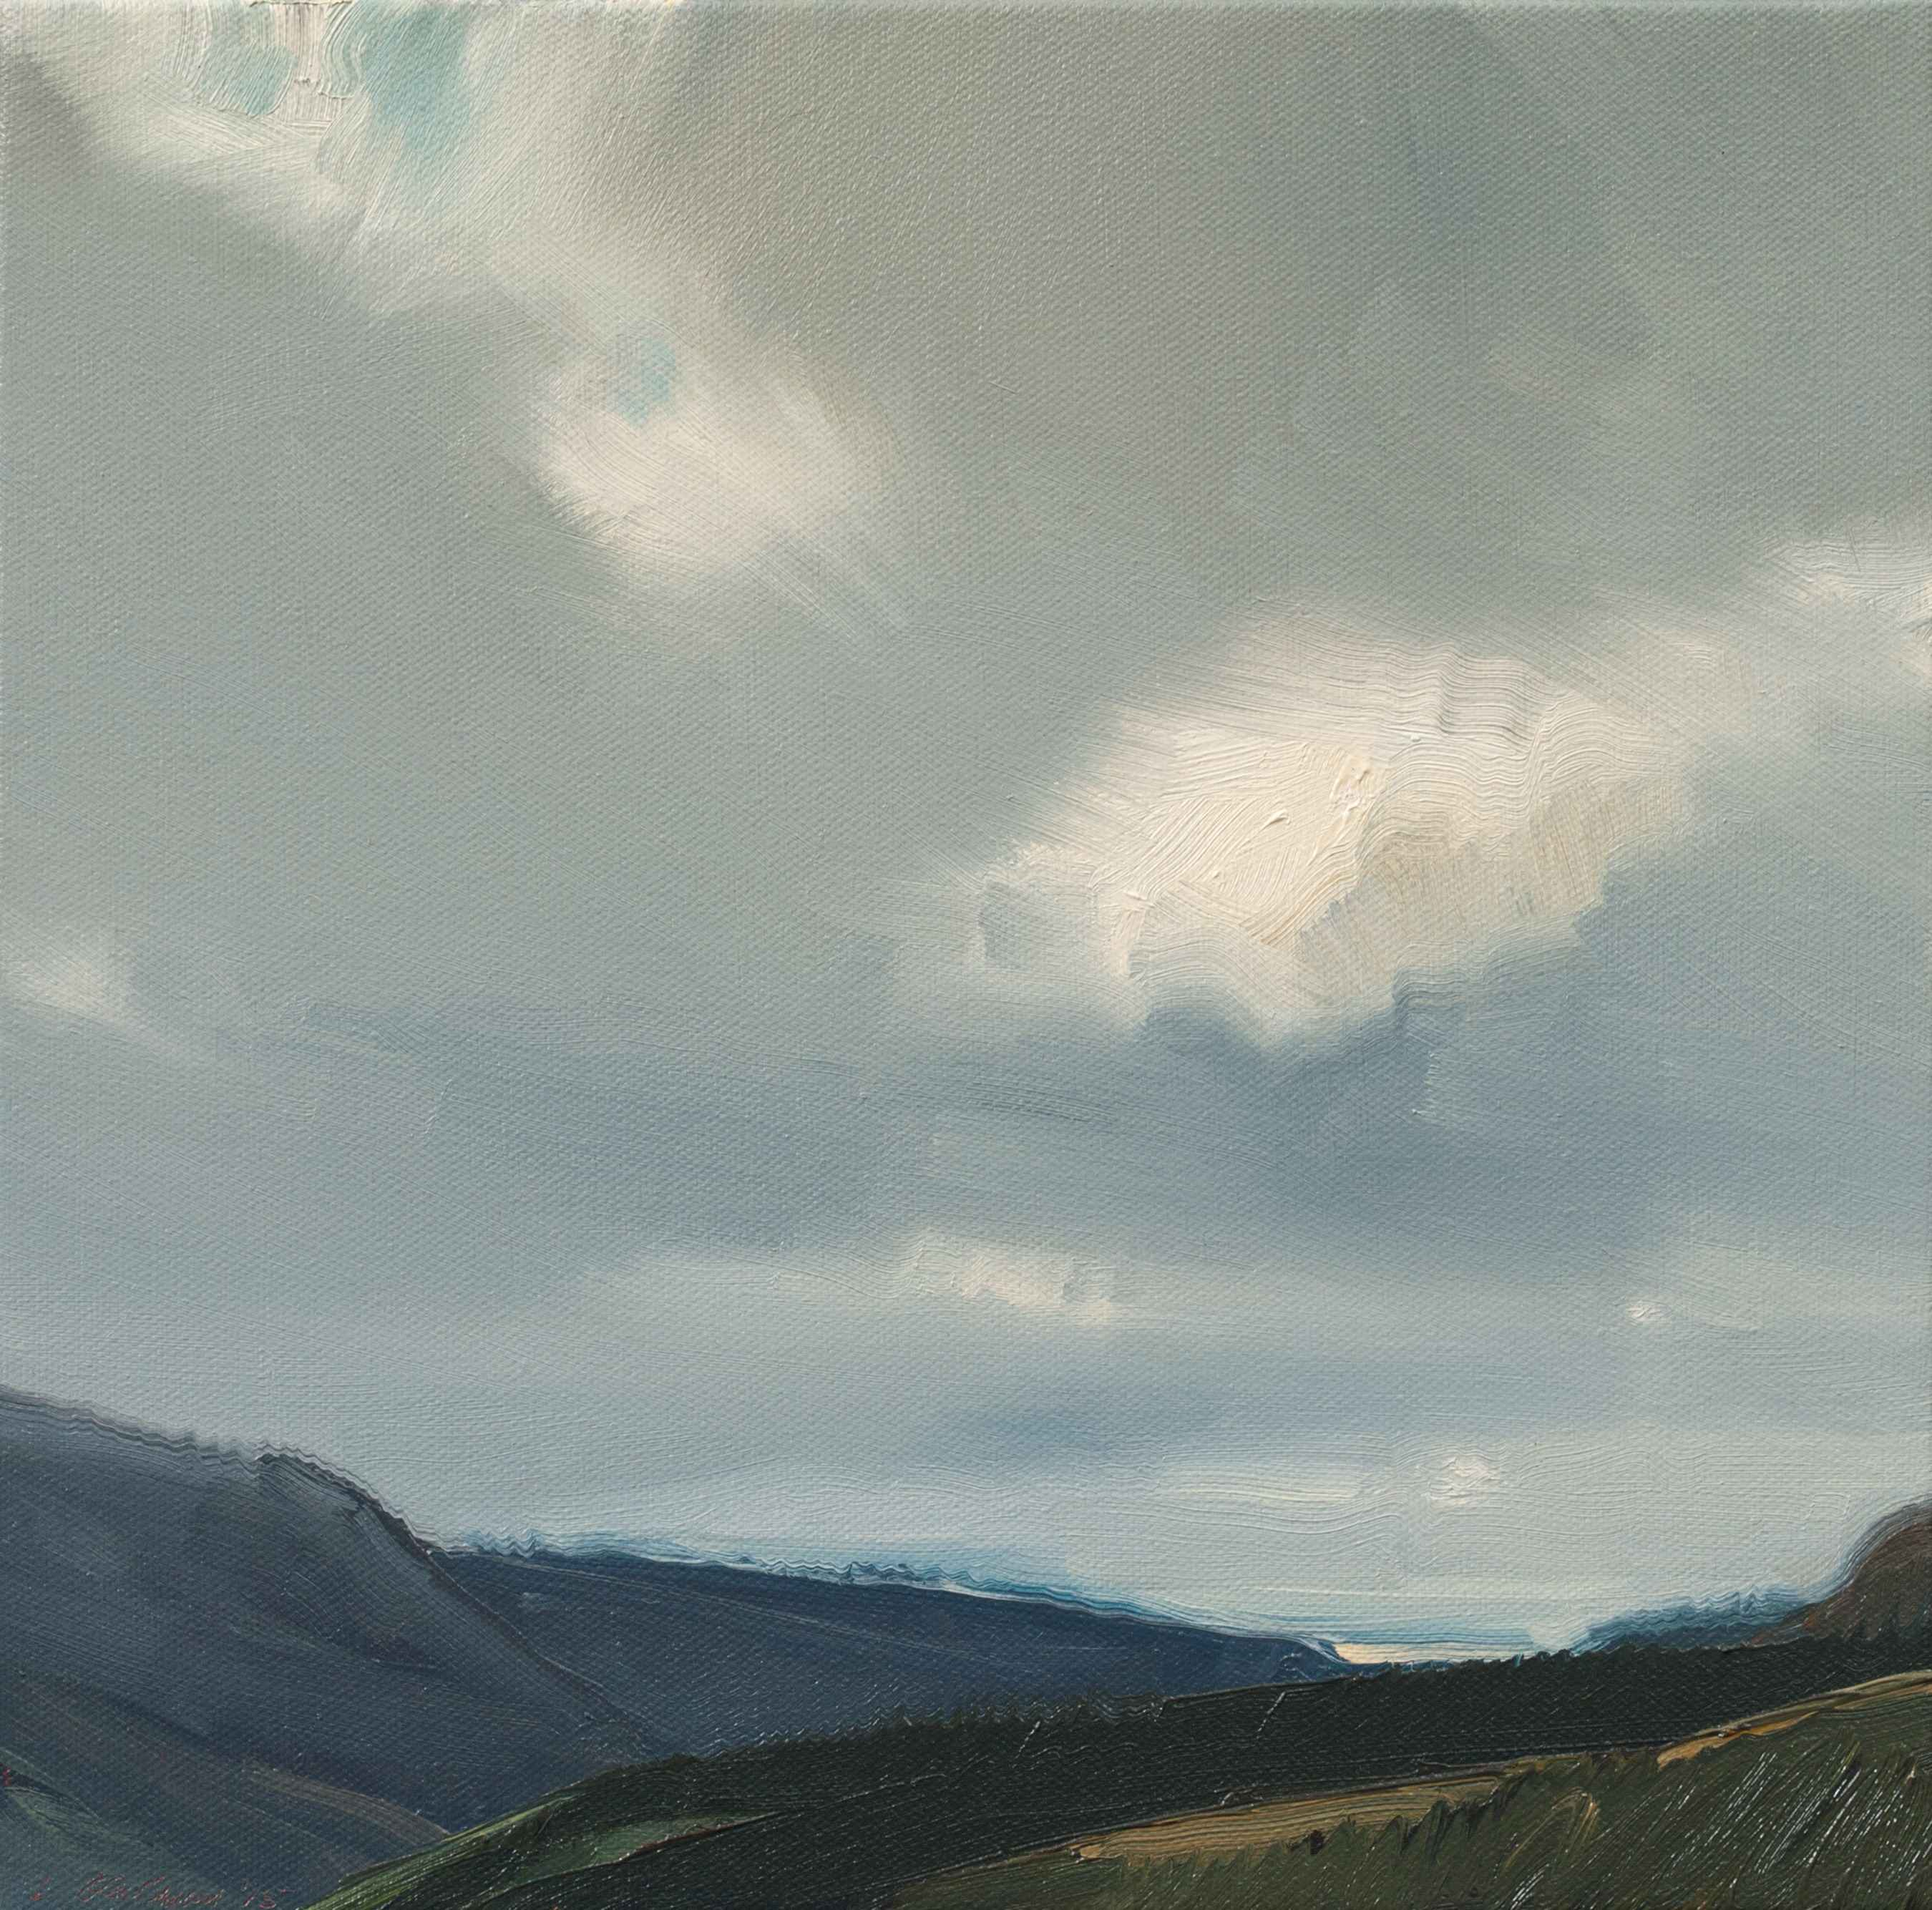 Sun and Showers by  Lisa Grossman - Masterpiece Online